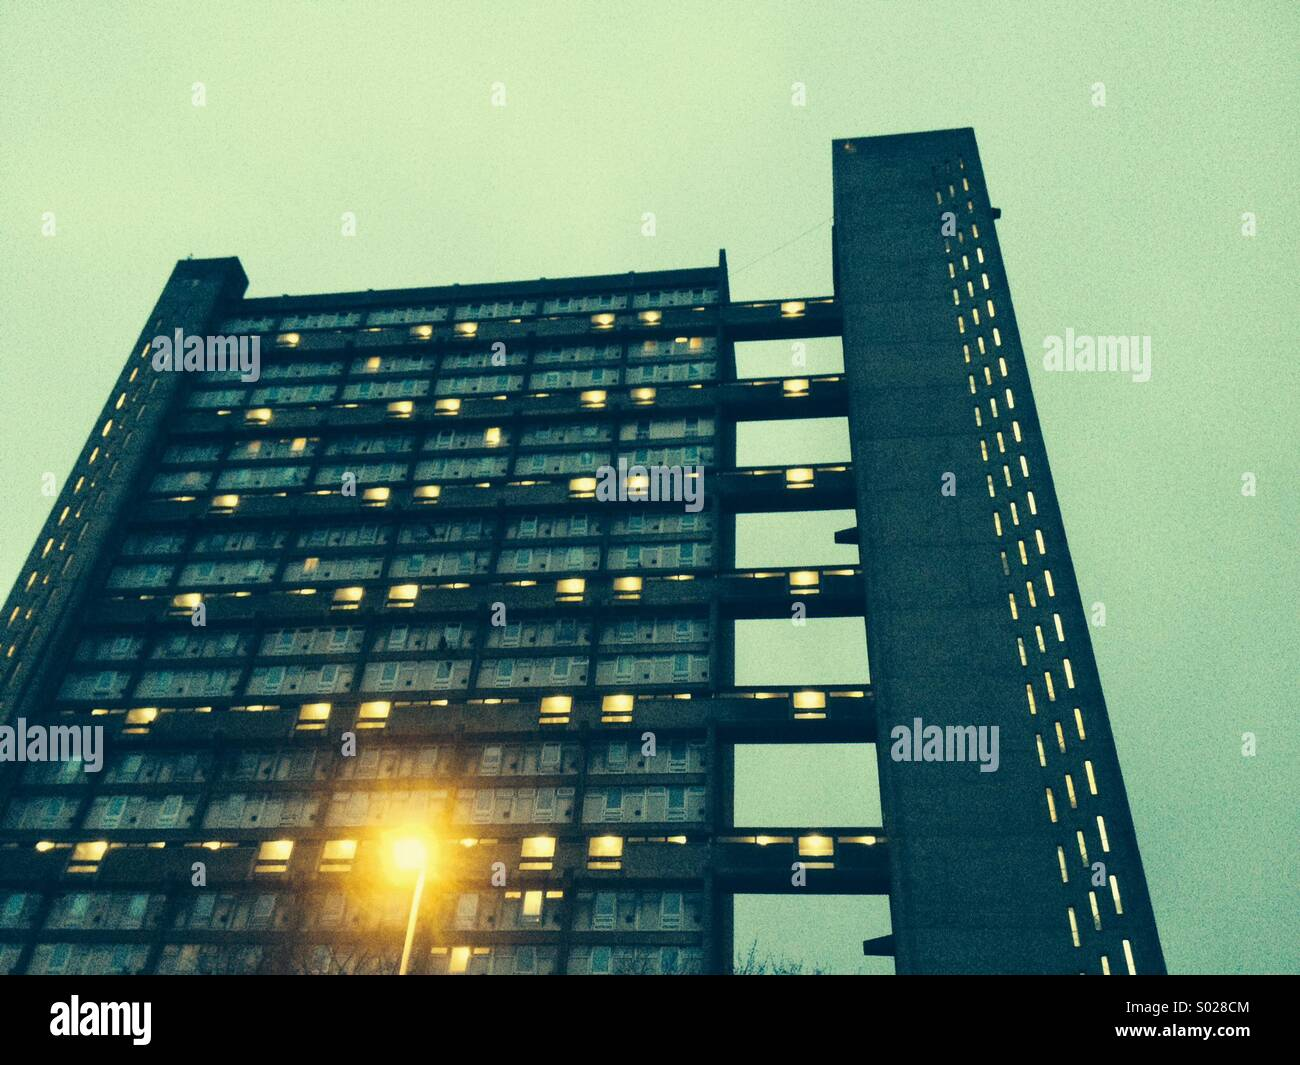 Balfron Tower at dusk, East London. The modernist and brutalist predecessor to Trellick in the West, also designed - Stock Image